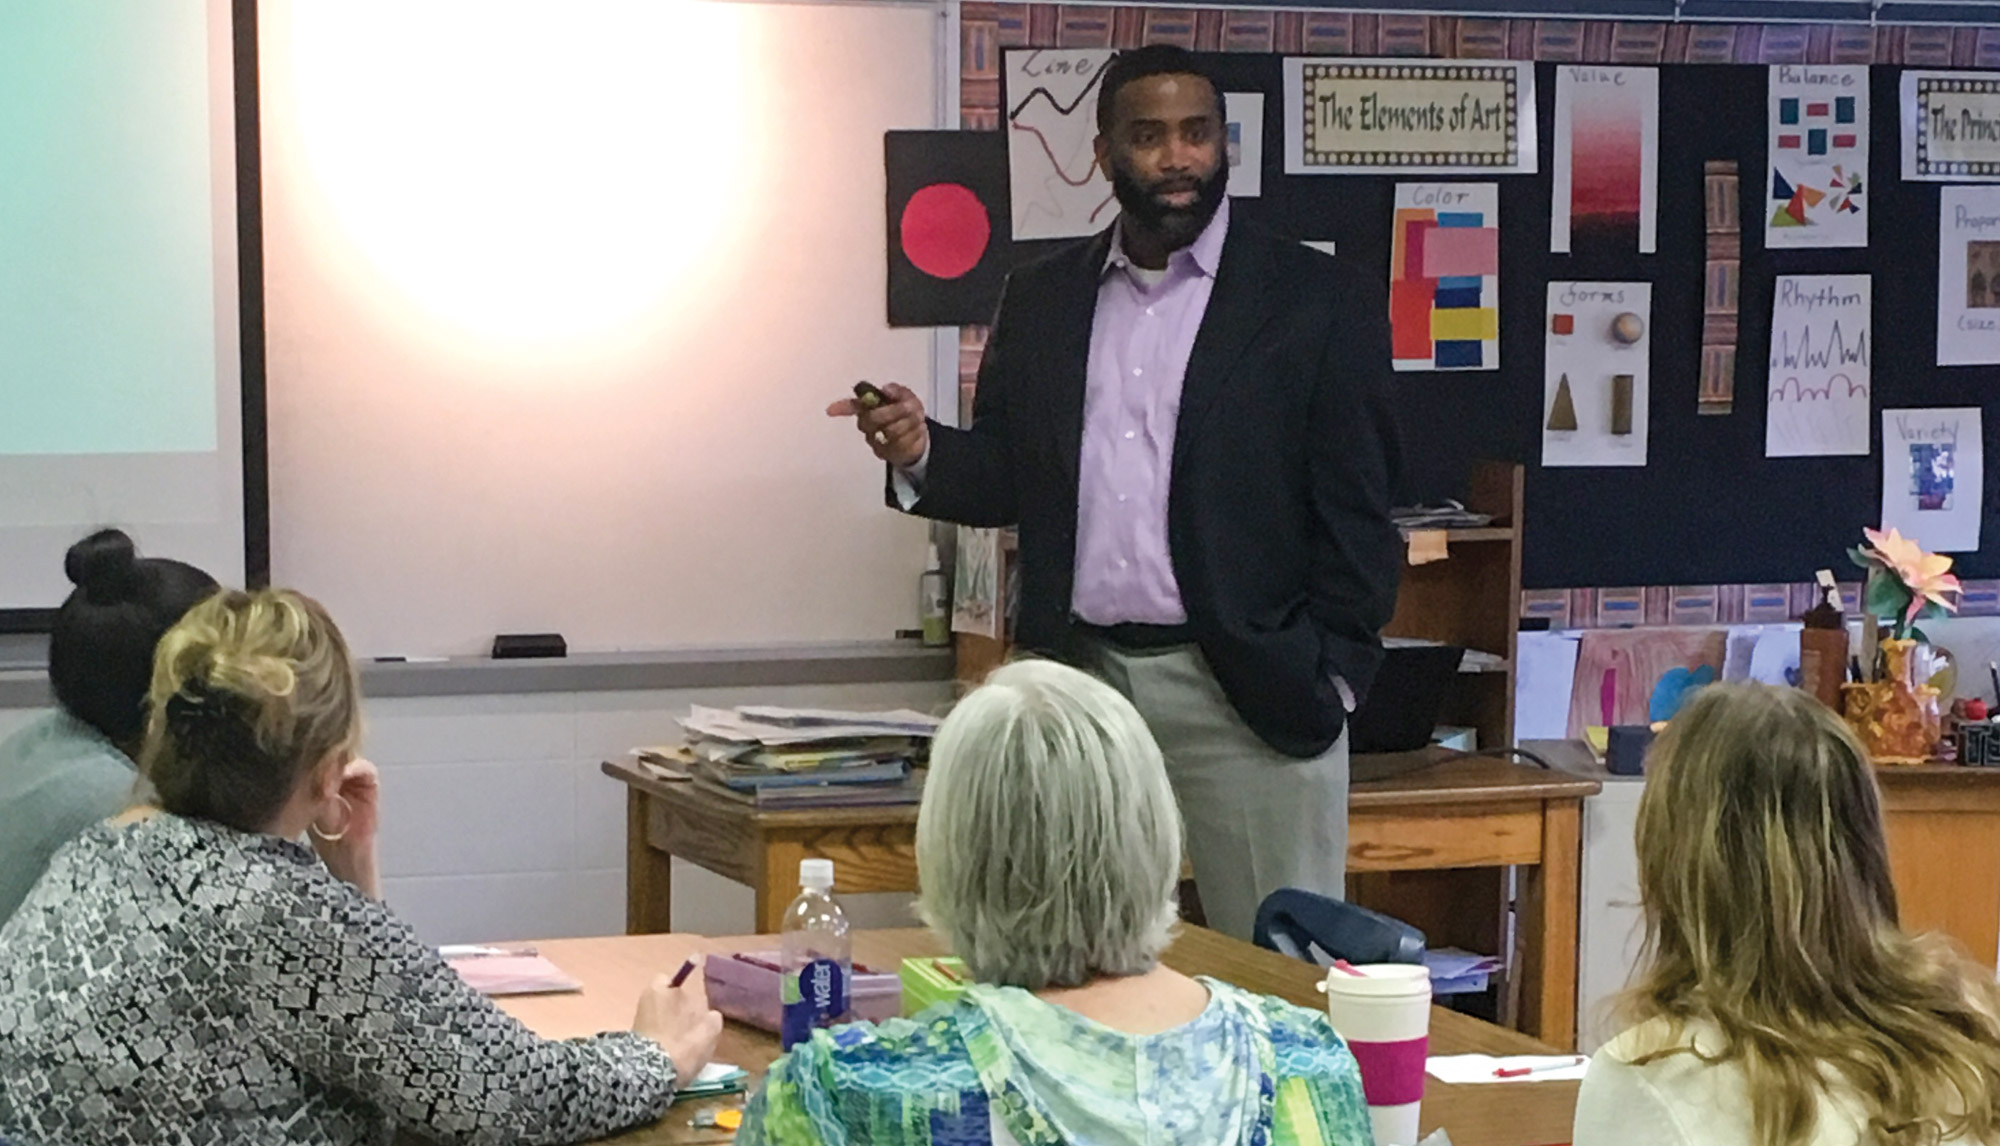 Levon Esters leads a professional development session for educators in the classroom